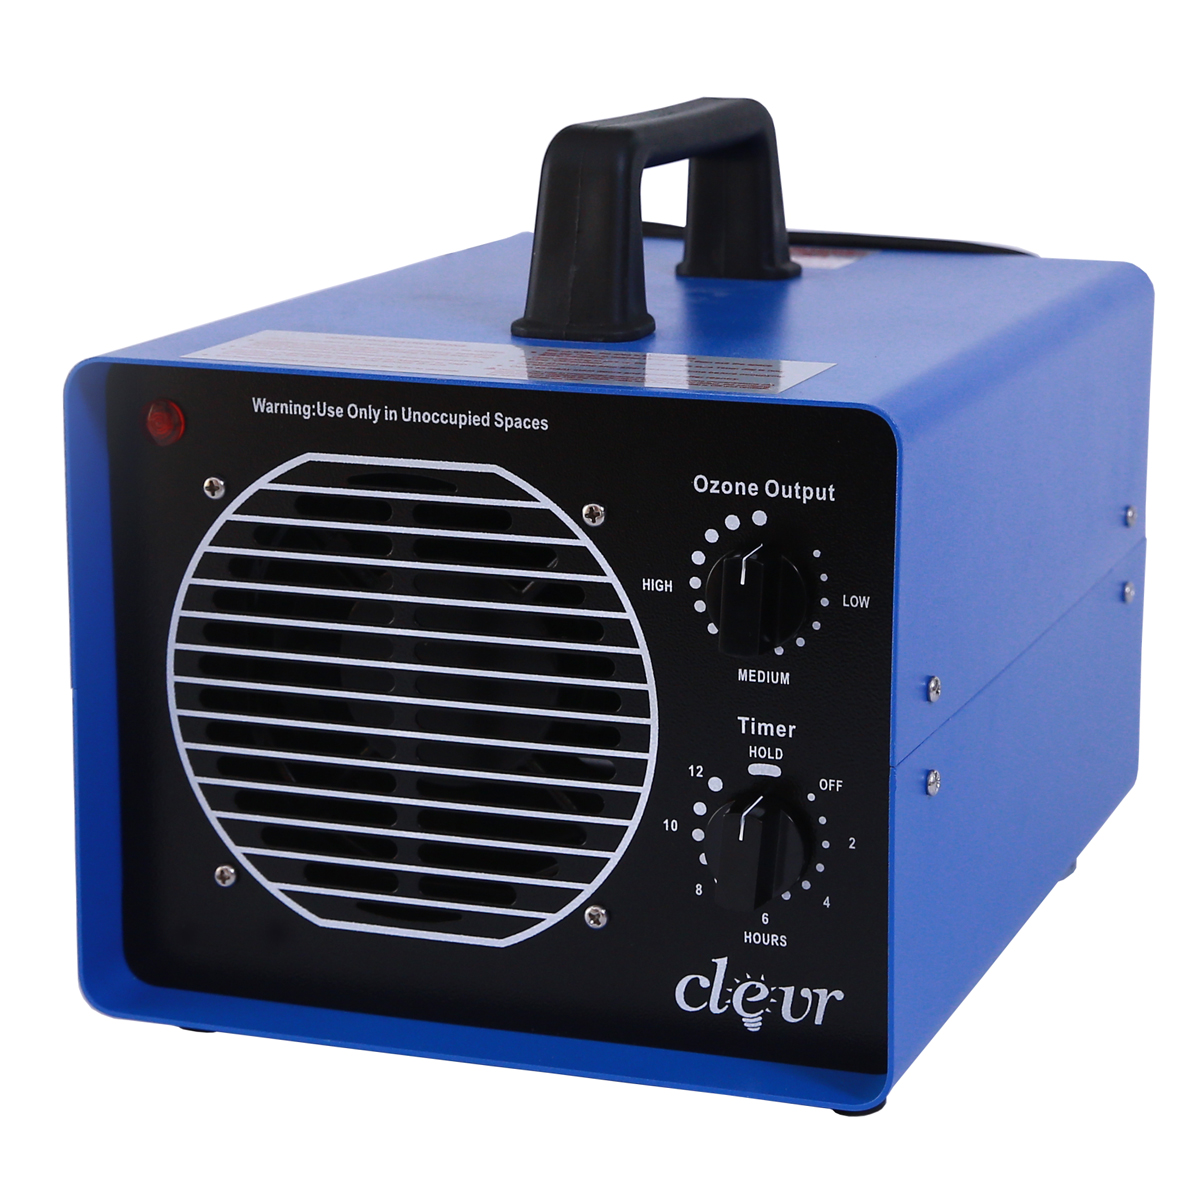 Clevr Professional Grade Ozone Generator with UV, Smoke Odor Remover w  3 plates 3,500 sq.ft. by Clevr